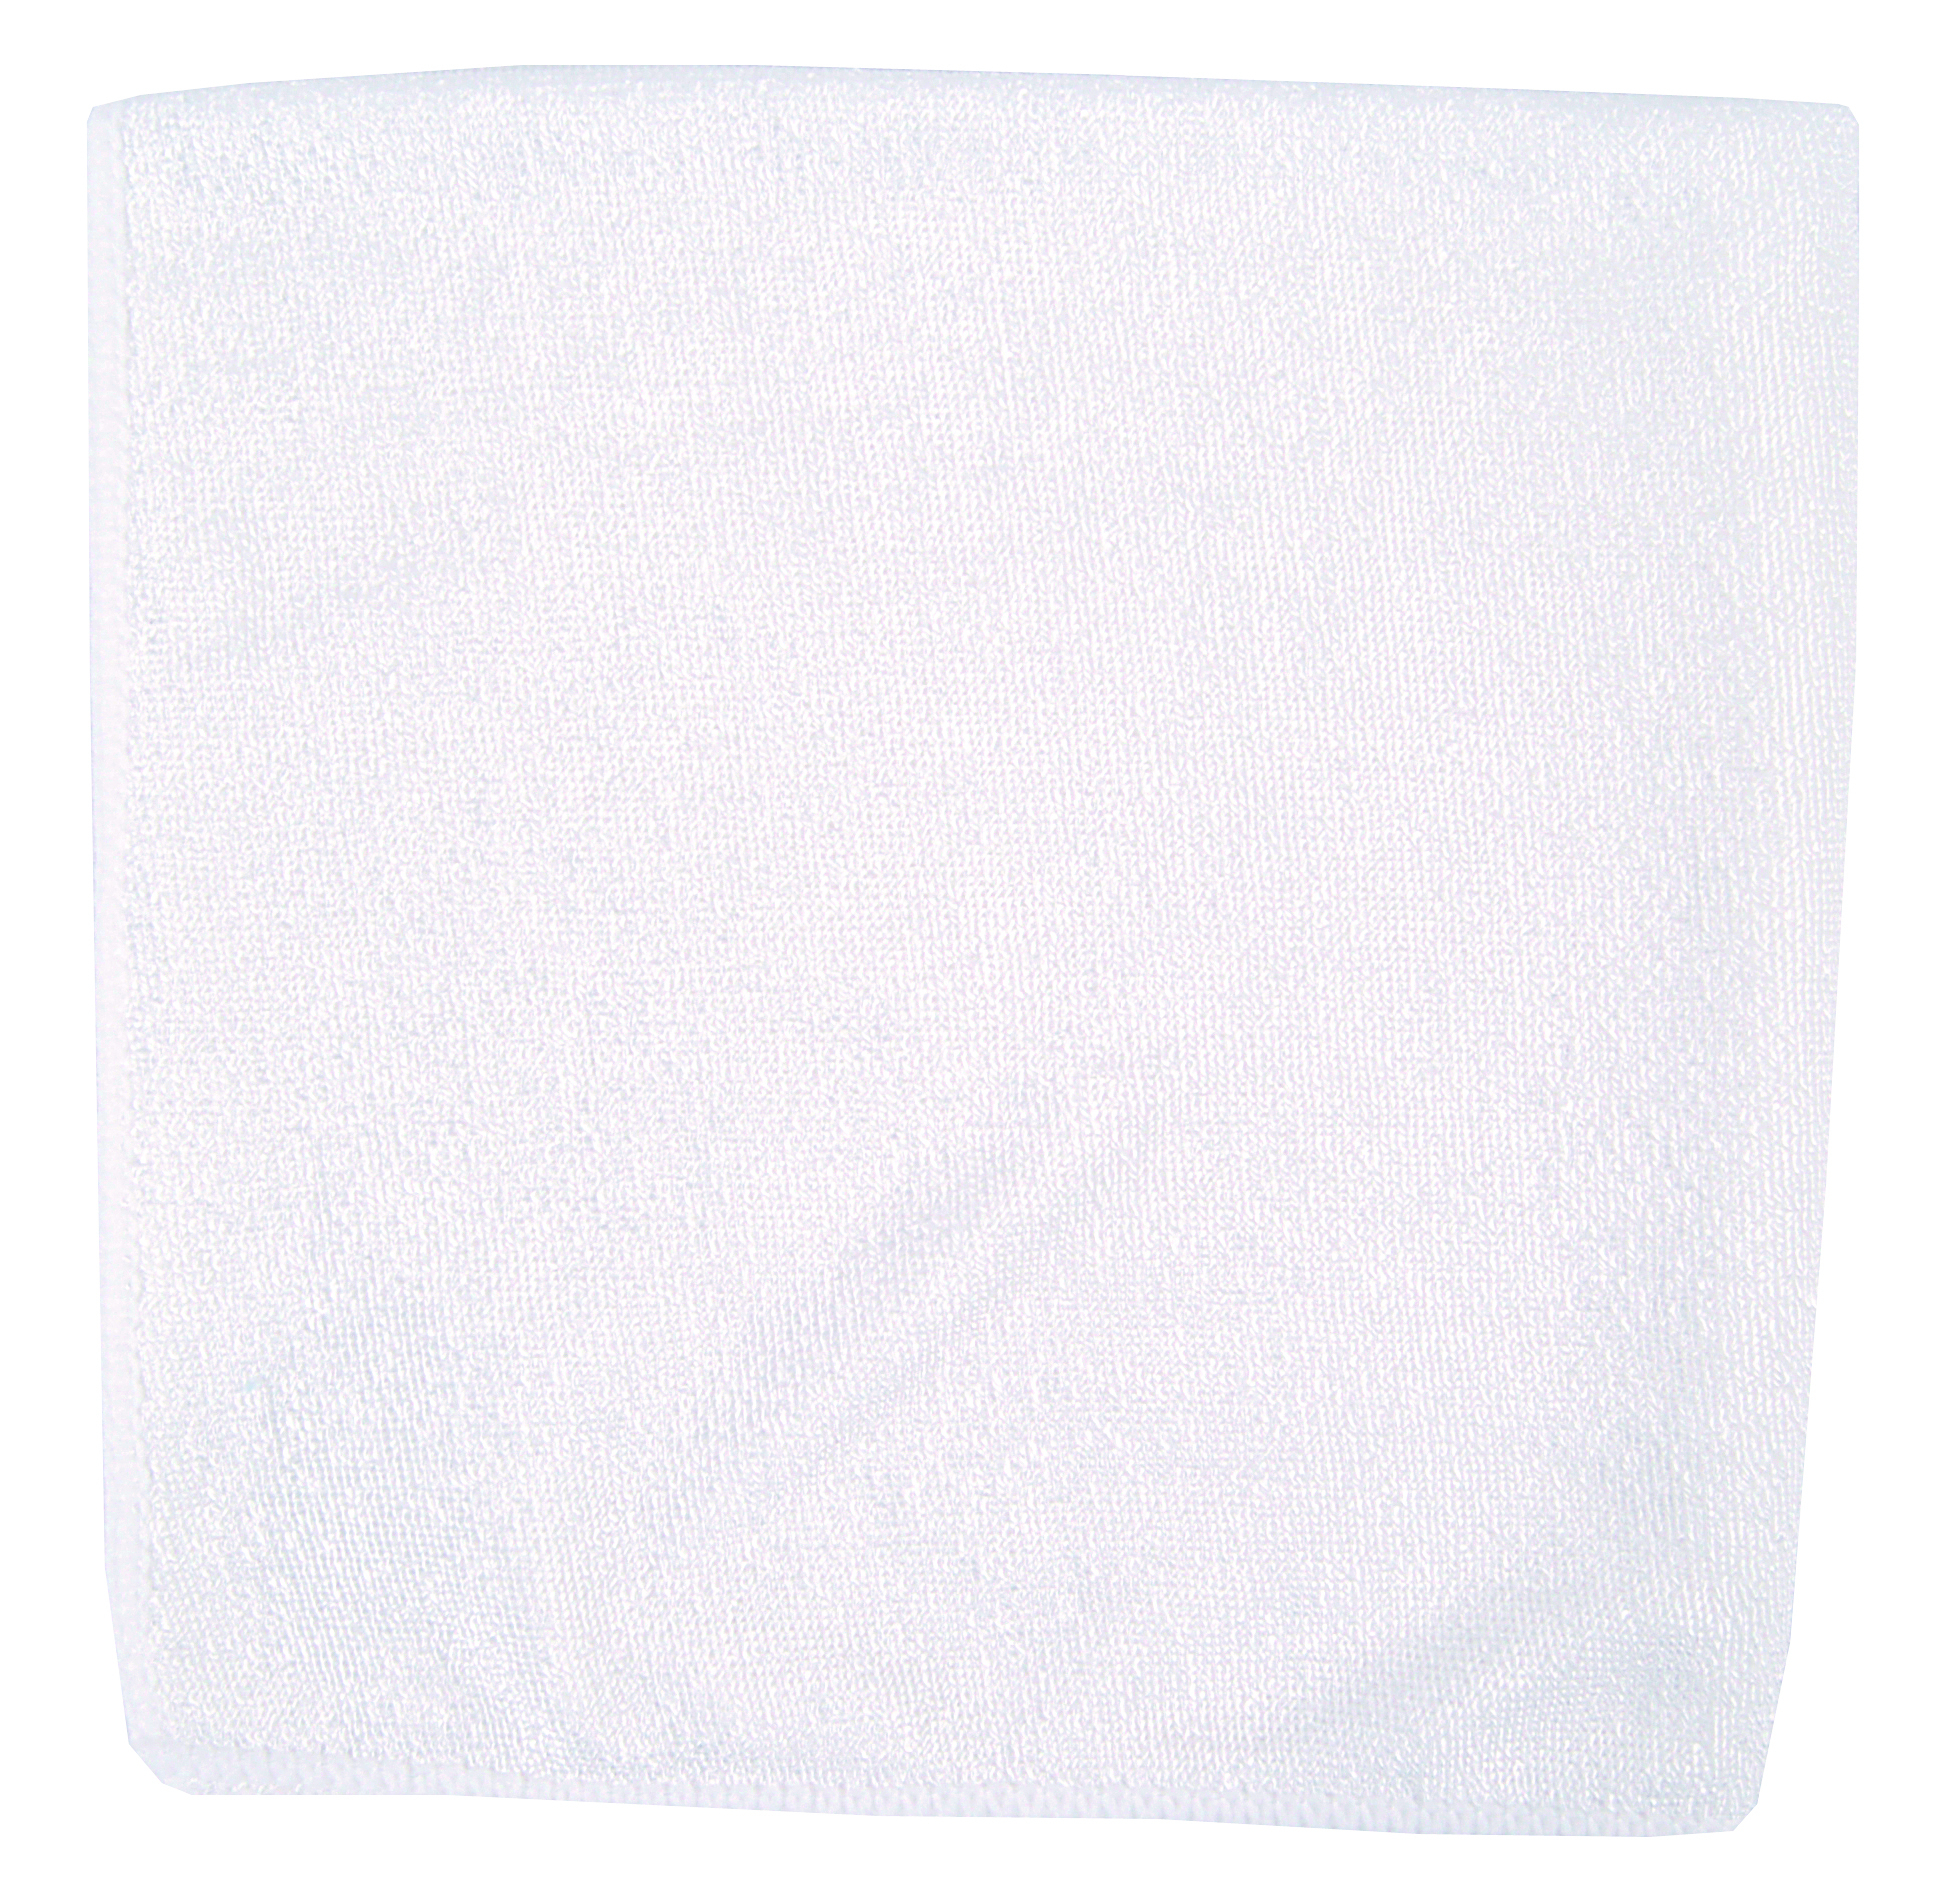 Single Micro Fibre Washable Cloth - White